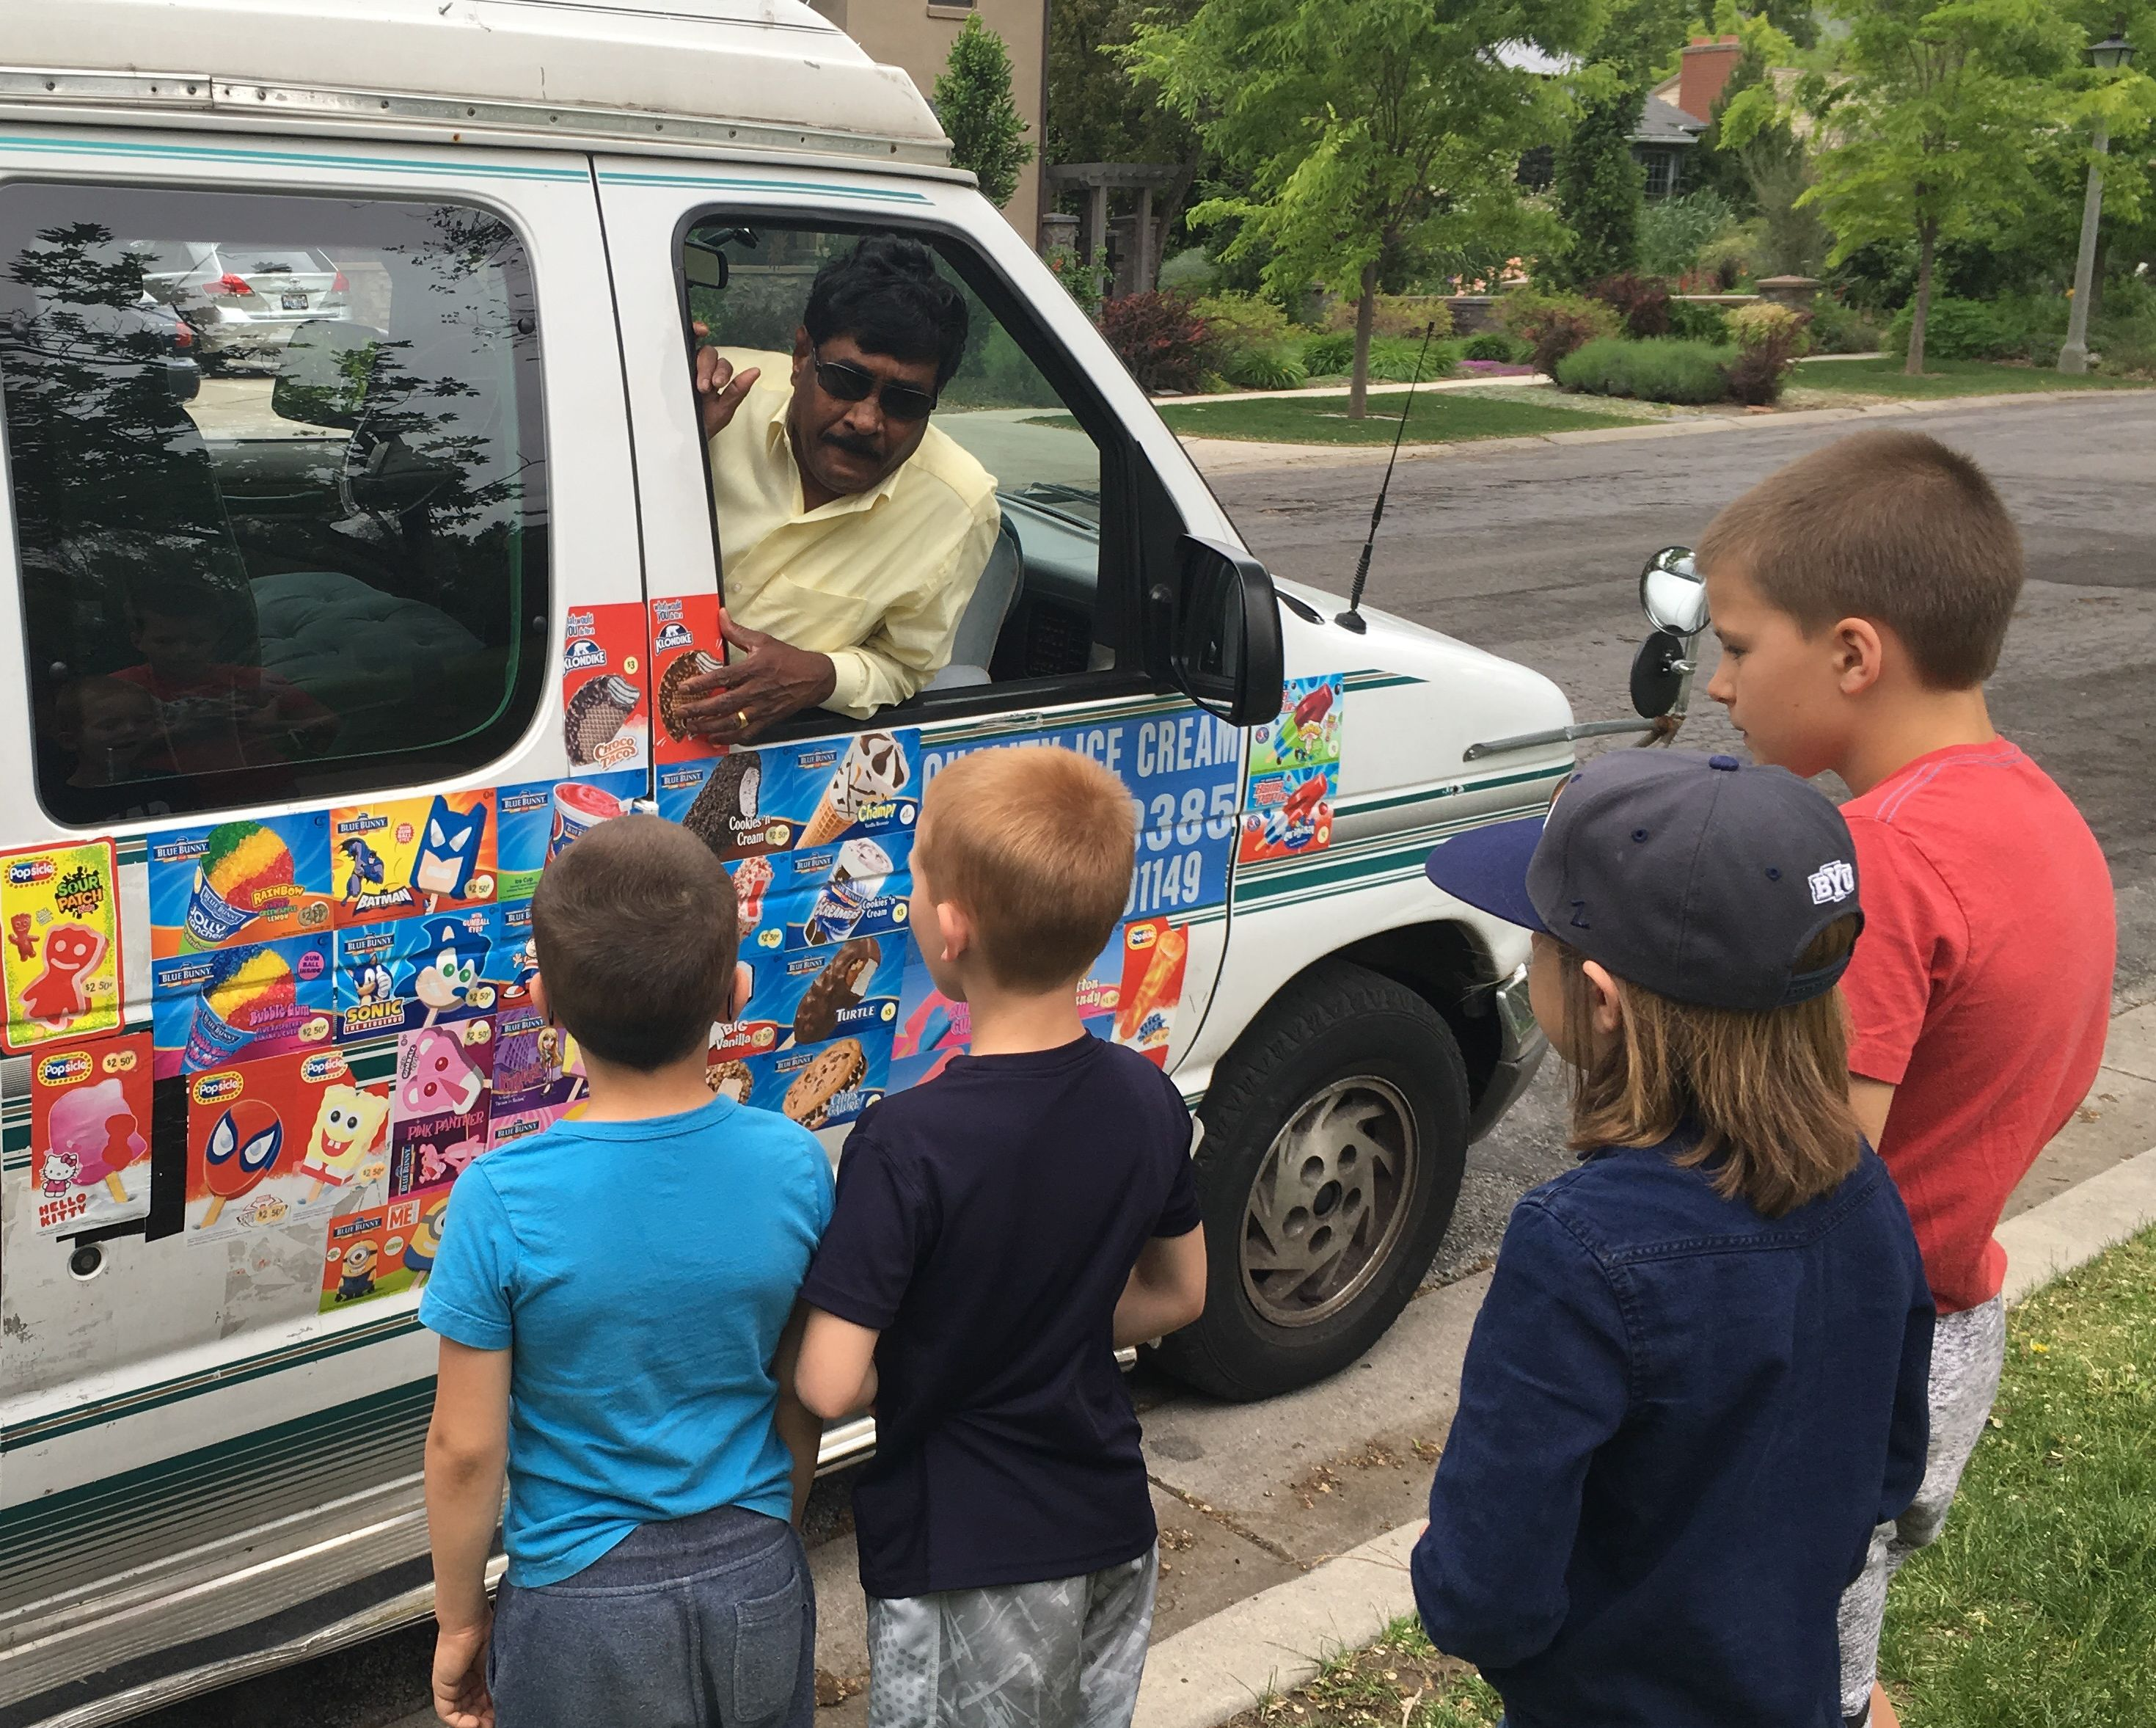 Four neighborhood boys reviewing treat options at the ice cream van, Salt Lake City, Utah, May 2016. | Photo by Kat Dayton, St. George News